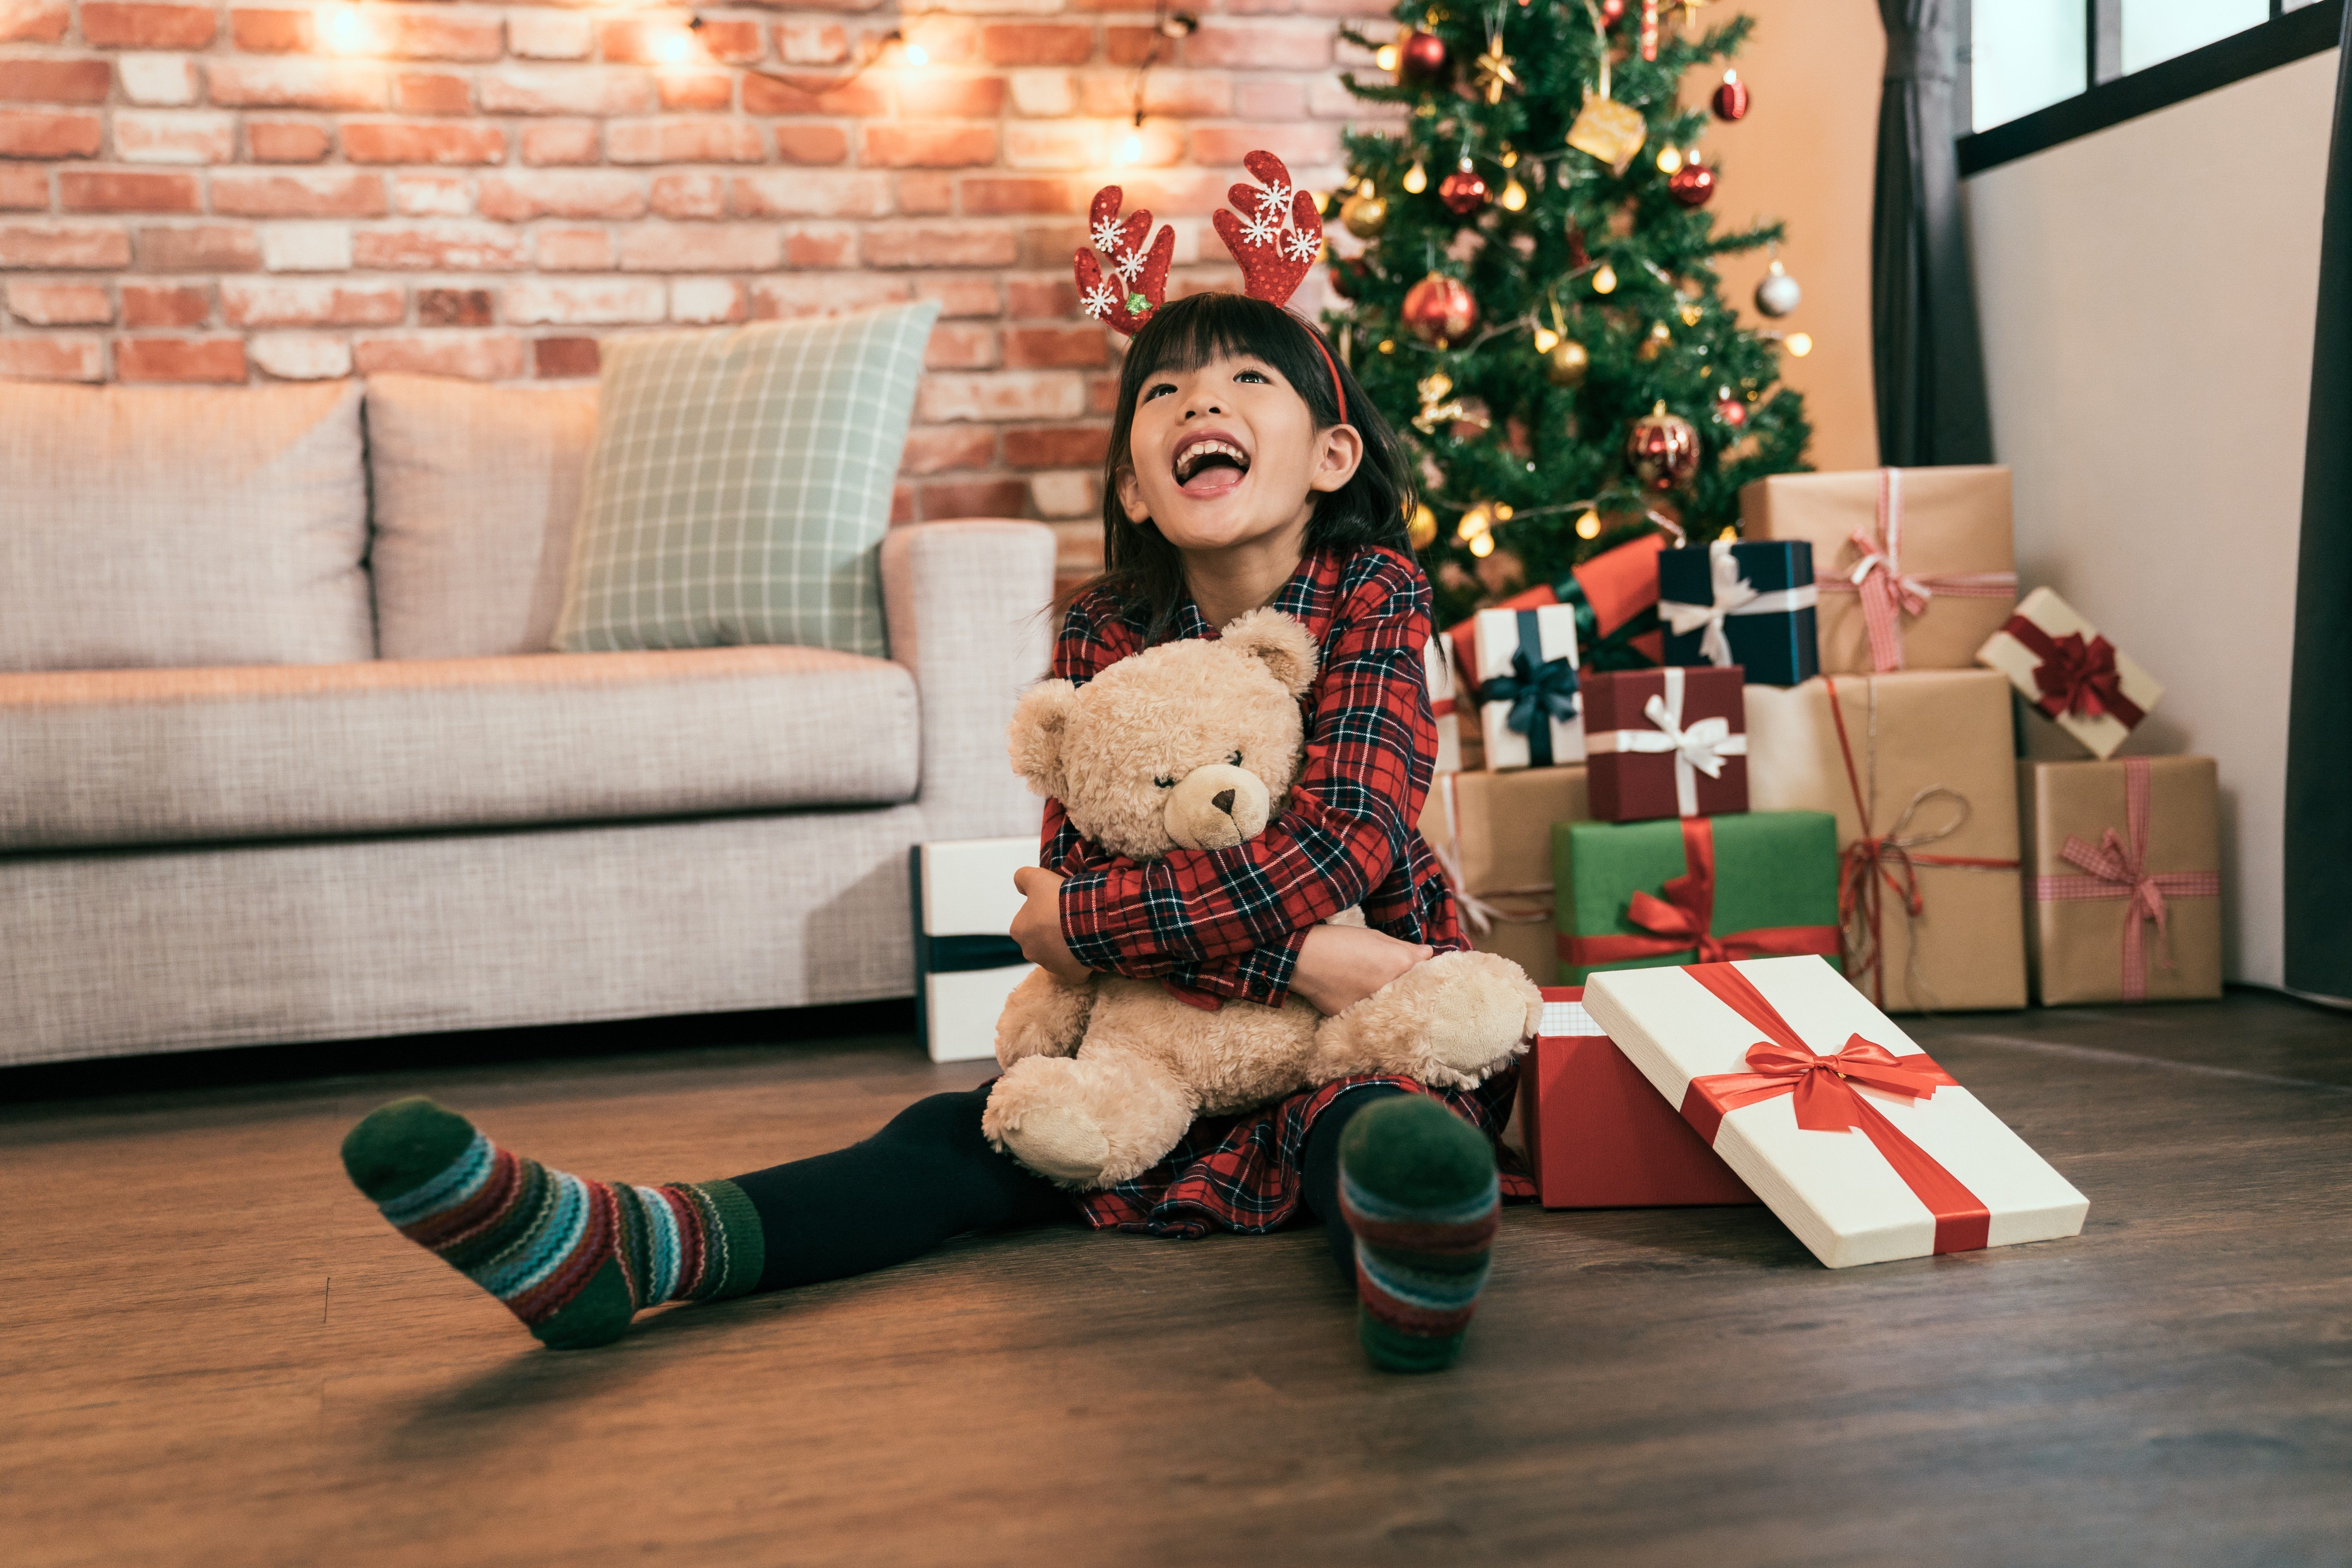 little girl cheerful got christmas present and smiling looking to the roof in the bright living room. merry xmas and happy new year are coming. excited kid holding teddy bear with decorated tree.